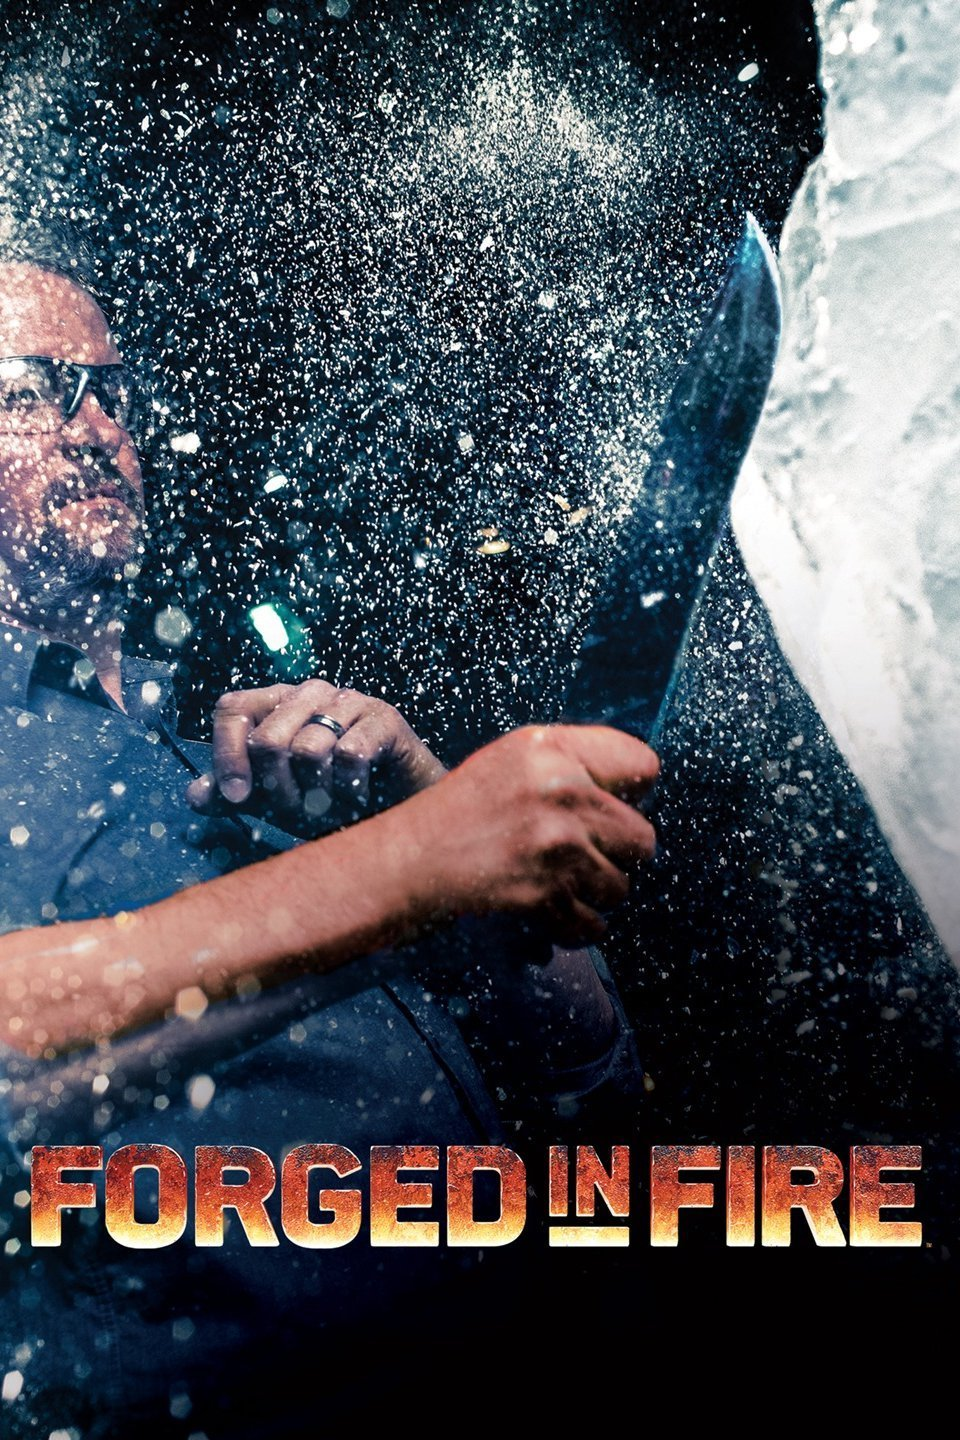 Forged in Fire S05E11 720p HDTV x264-BATV